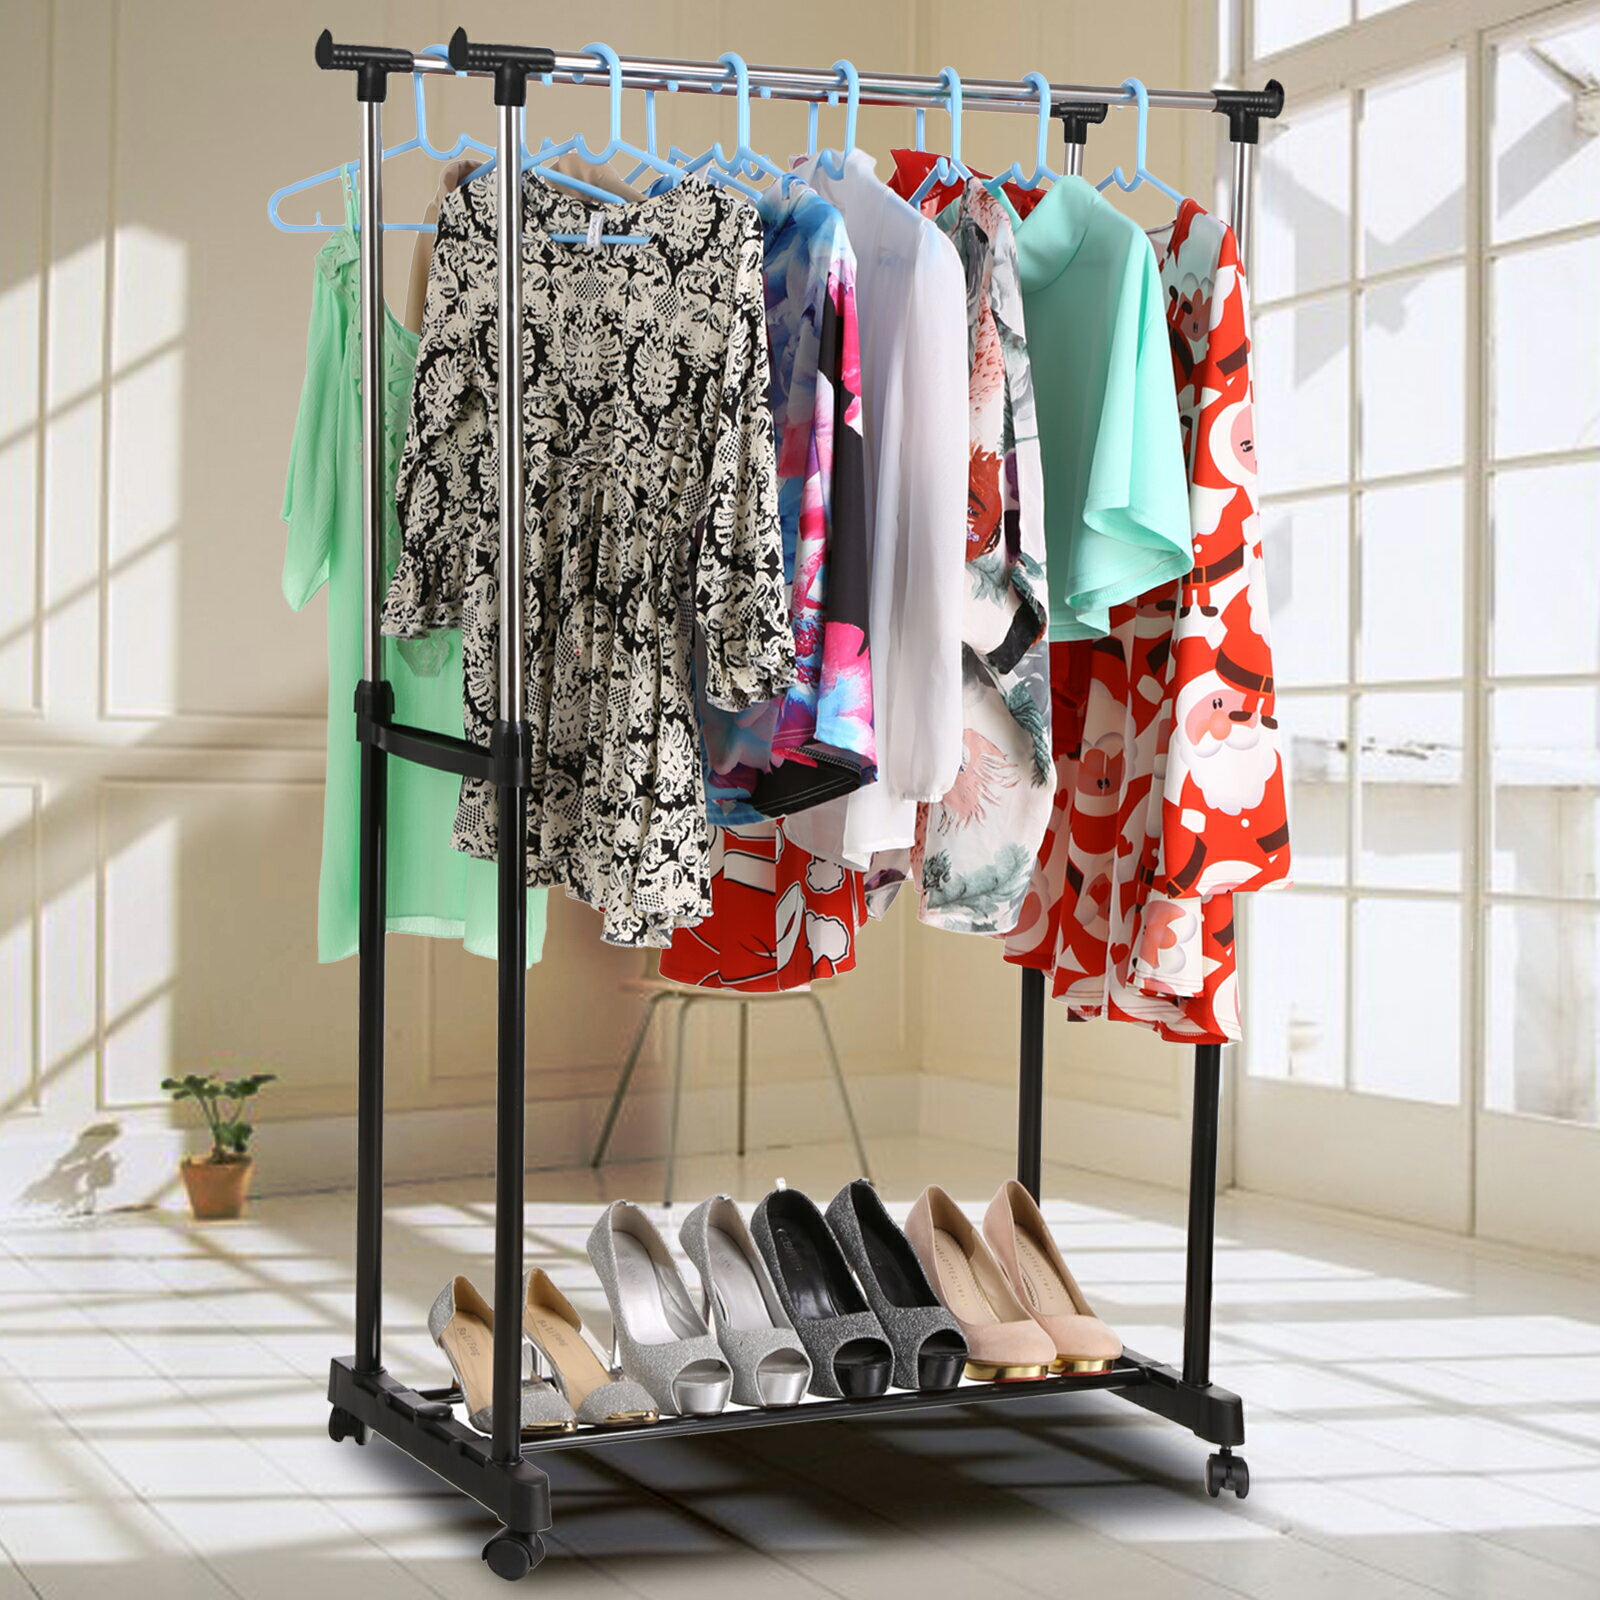 Clothes Garment Drying Hanging Racks 9